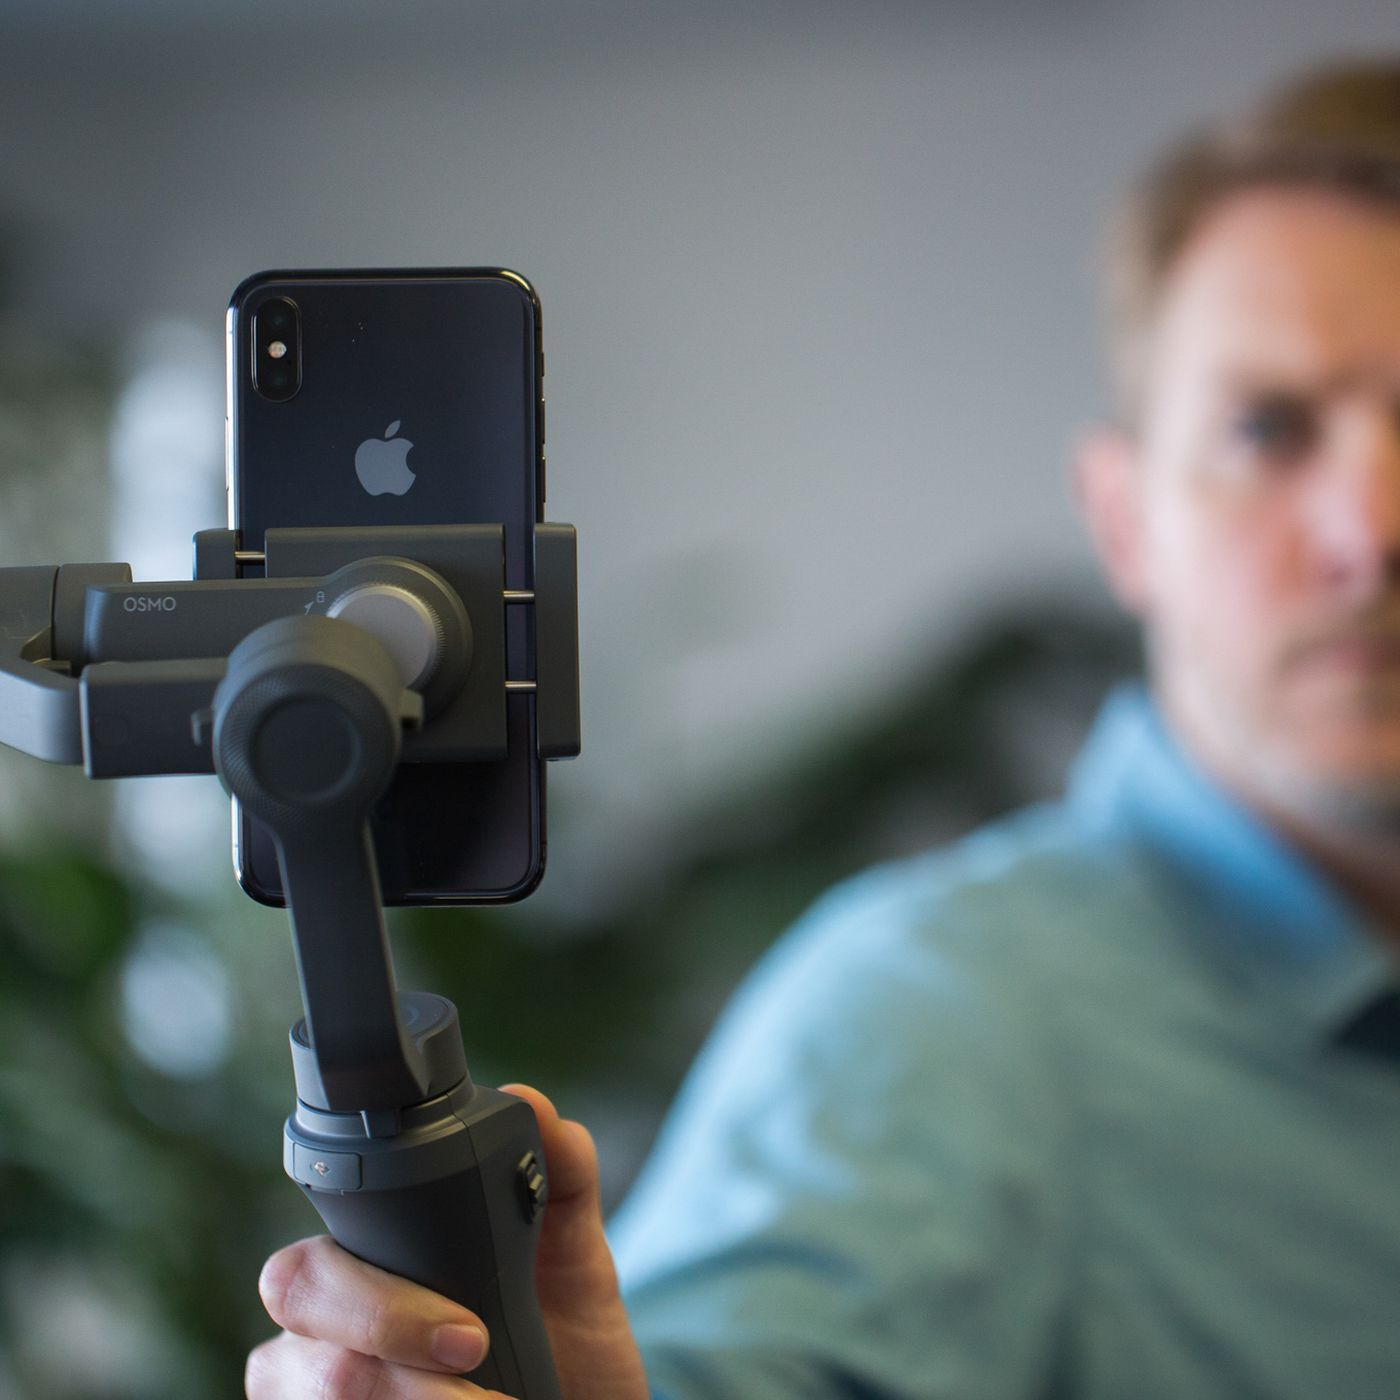 Checking out the new $129 95 DJI Osmo Mobile 2 phone